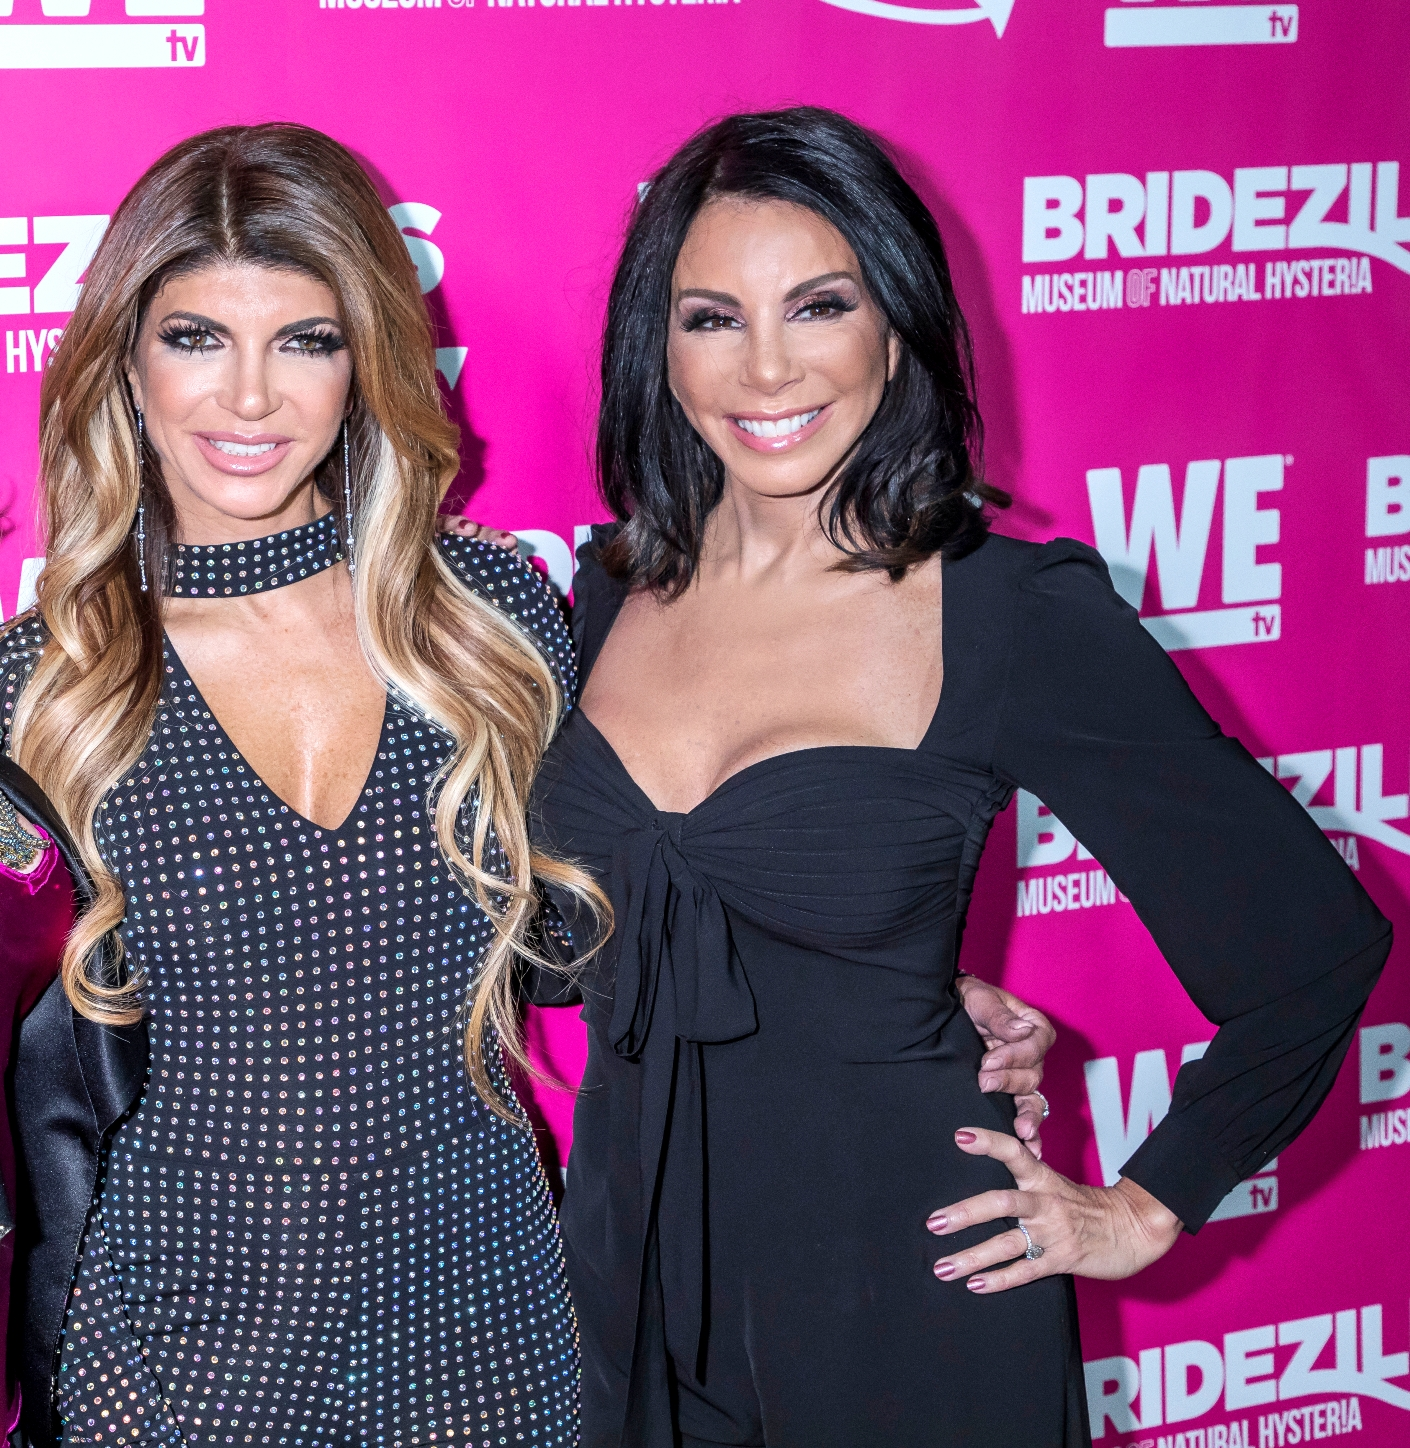 RHONJ Stars Teresa Giudice and Danielle Staub Unfollow Each Other on Instagram After New Feud